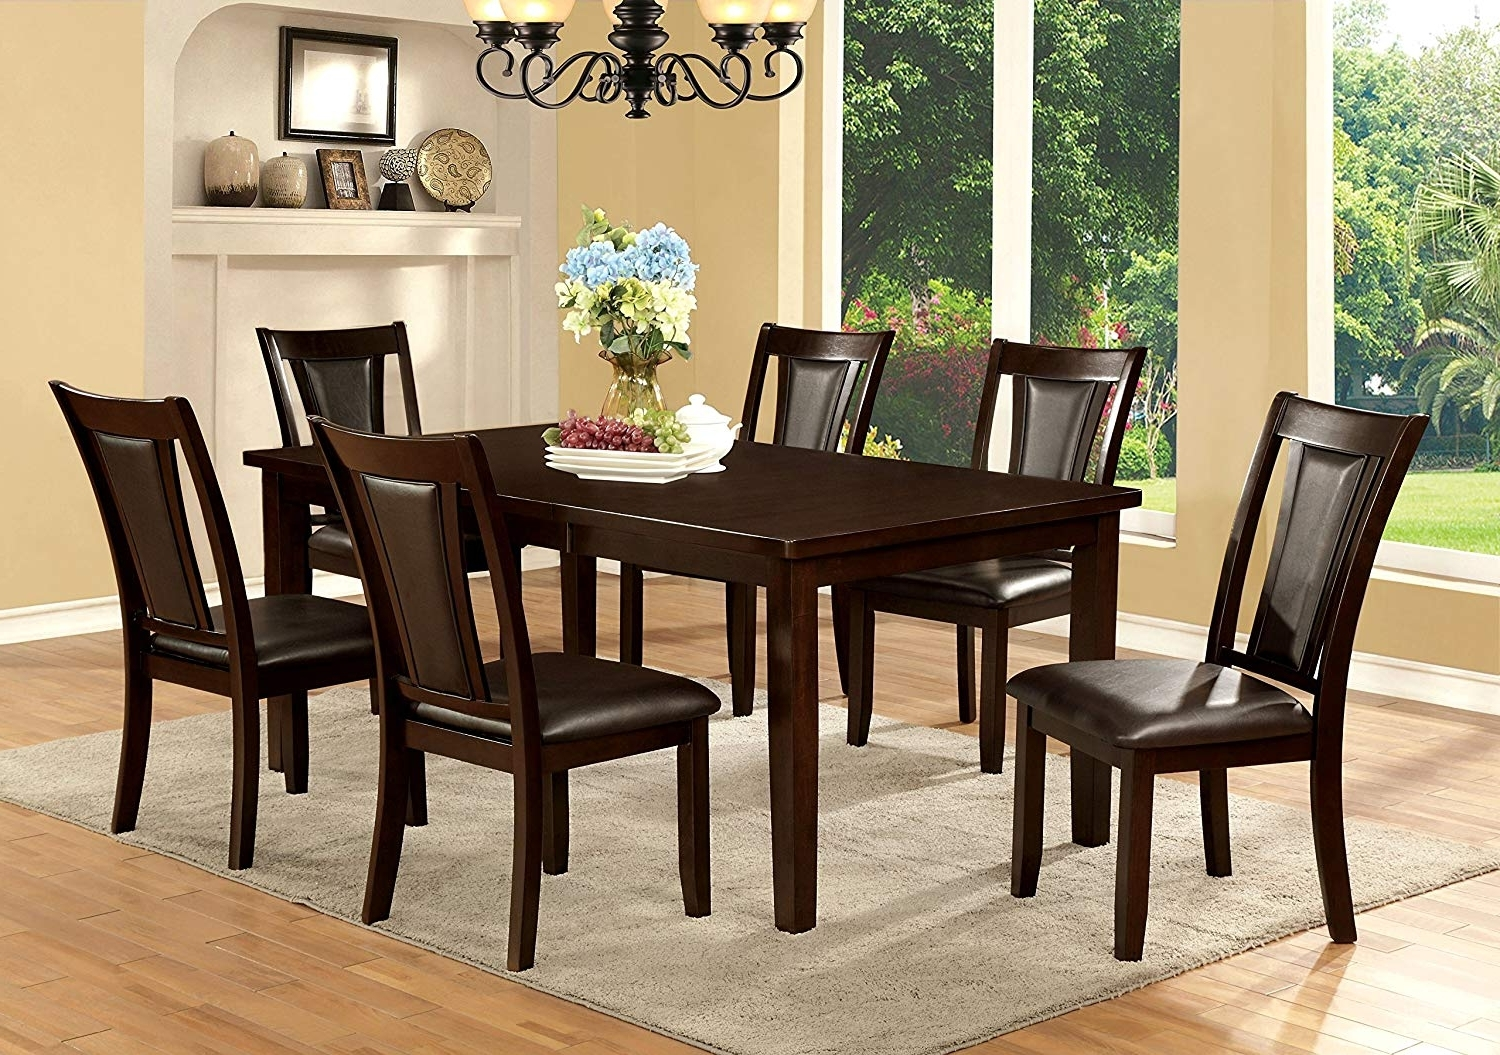 Amazon – Furniture Of America Simone 7 Piece Contemporary Dining Inside Newest Crawford 6 Piece Rectangle Dining Sets (View 2 of 25)